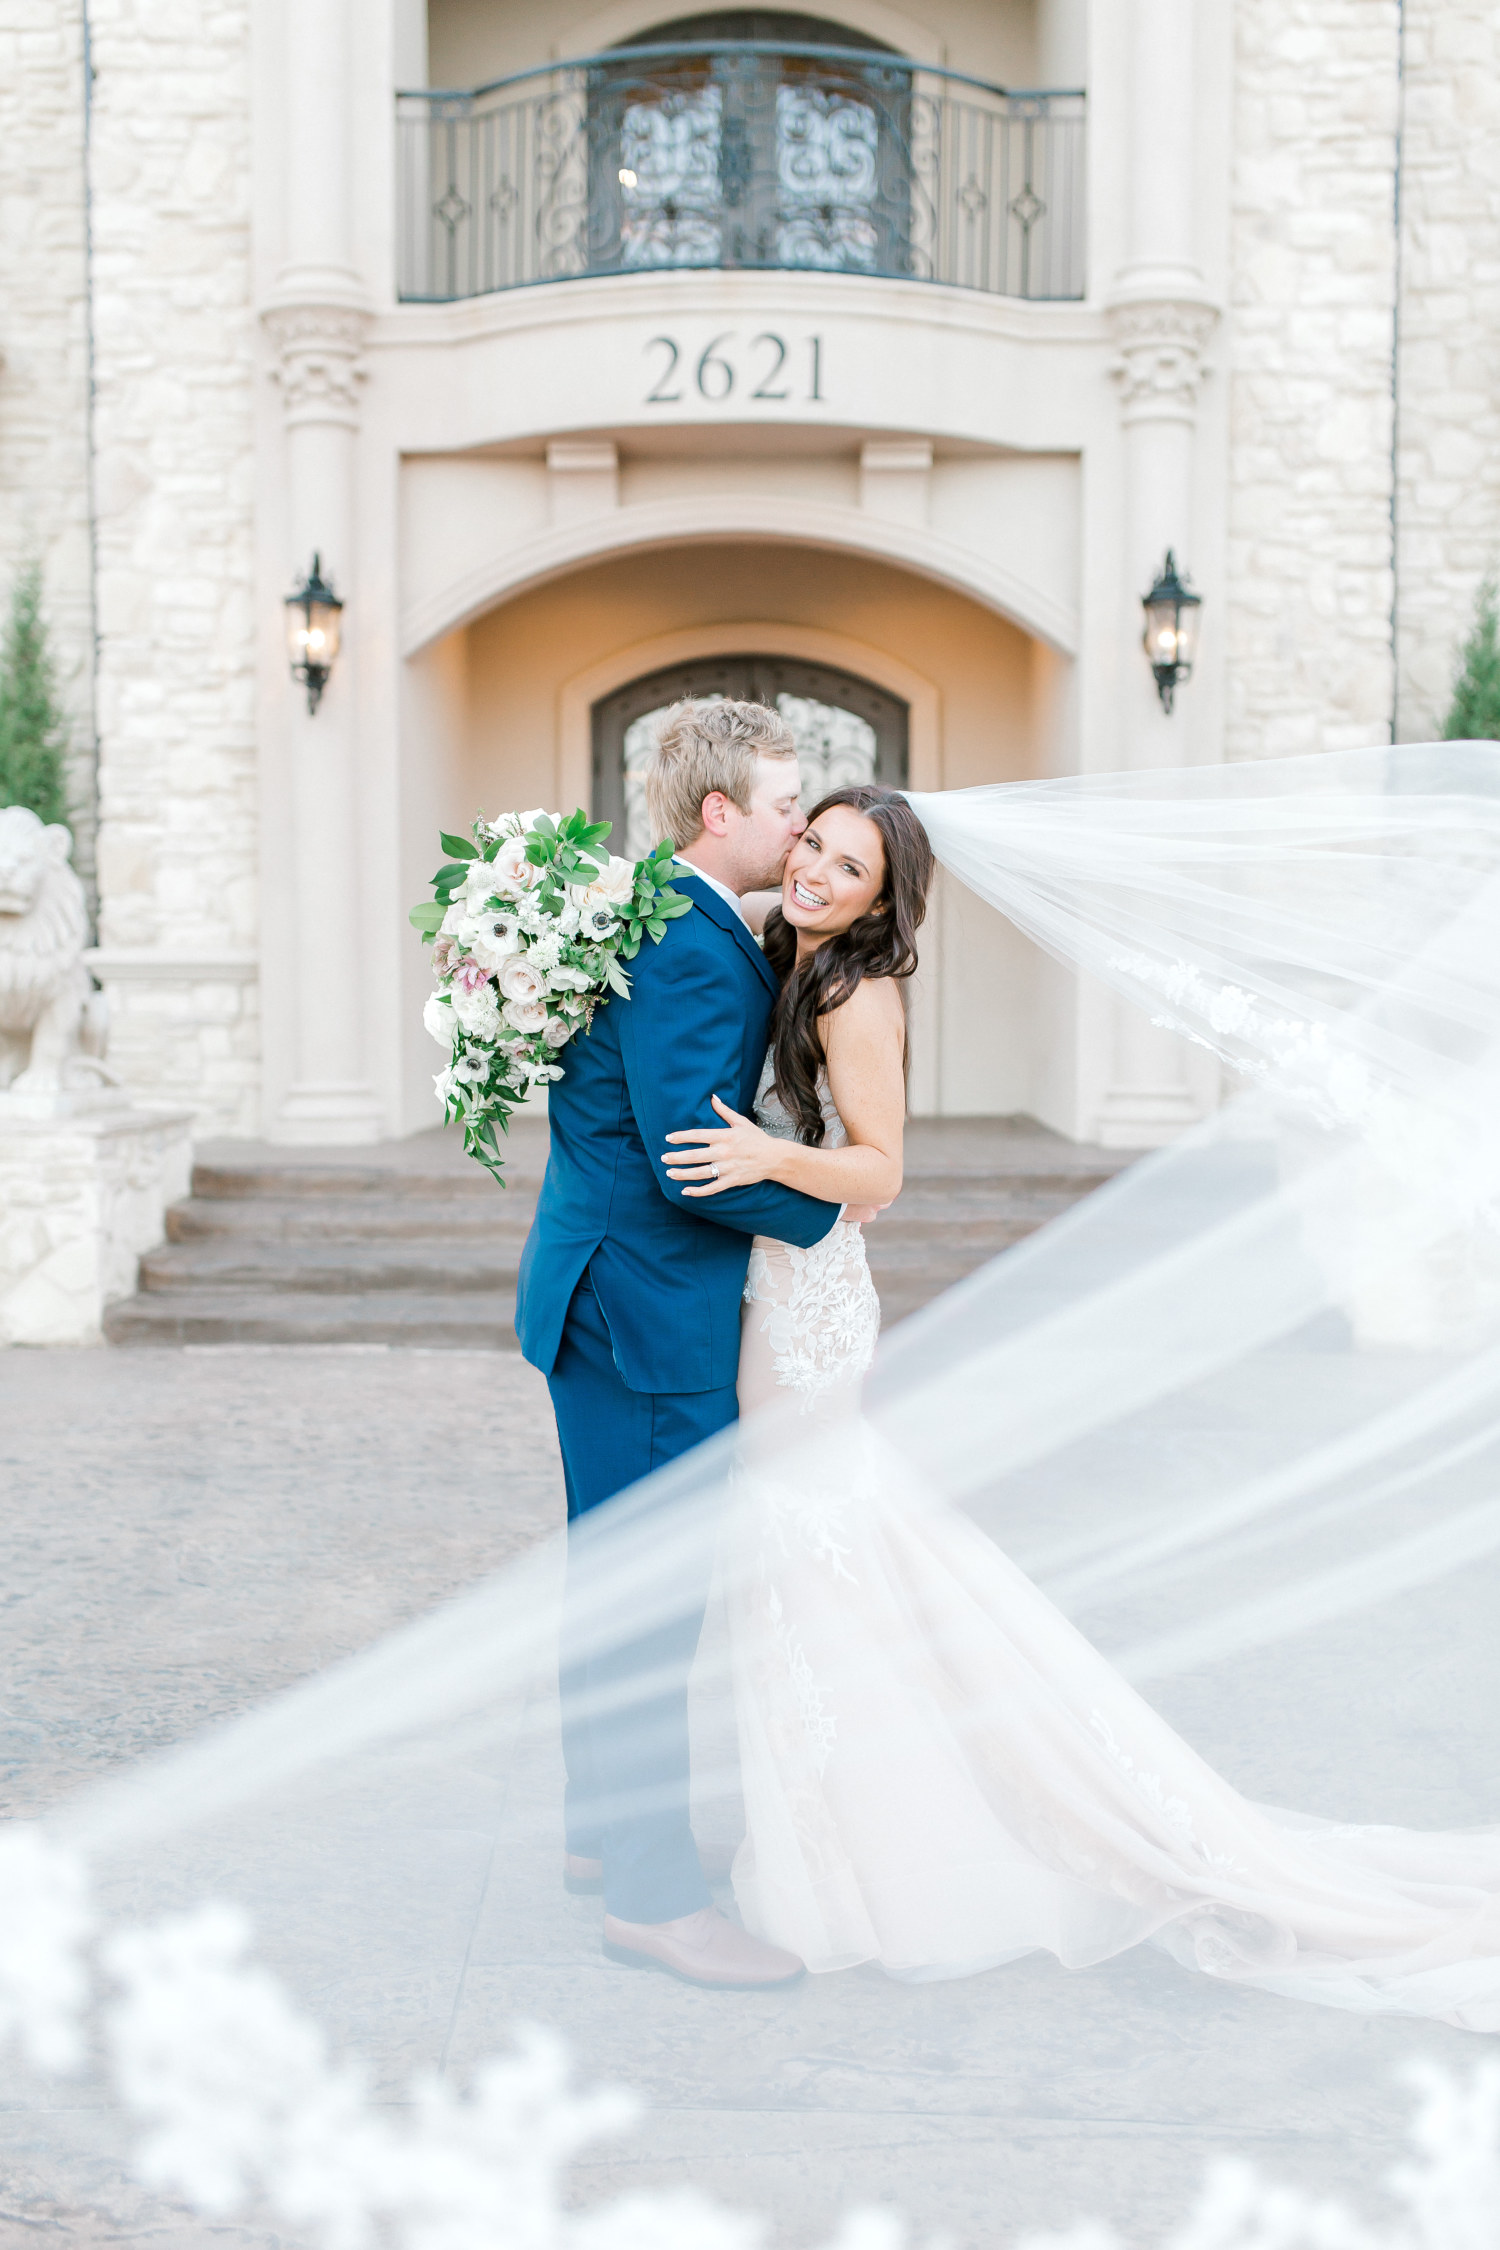 Hannah Way Photography - Dallas wedding photographer - luxury weddings - luxury wedding photographer - dfw wedding photographer - best wedding photographer - Dallas best wedding photographer - knotting hill place